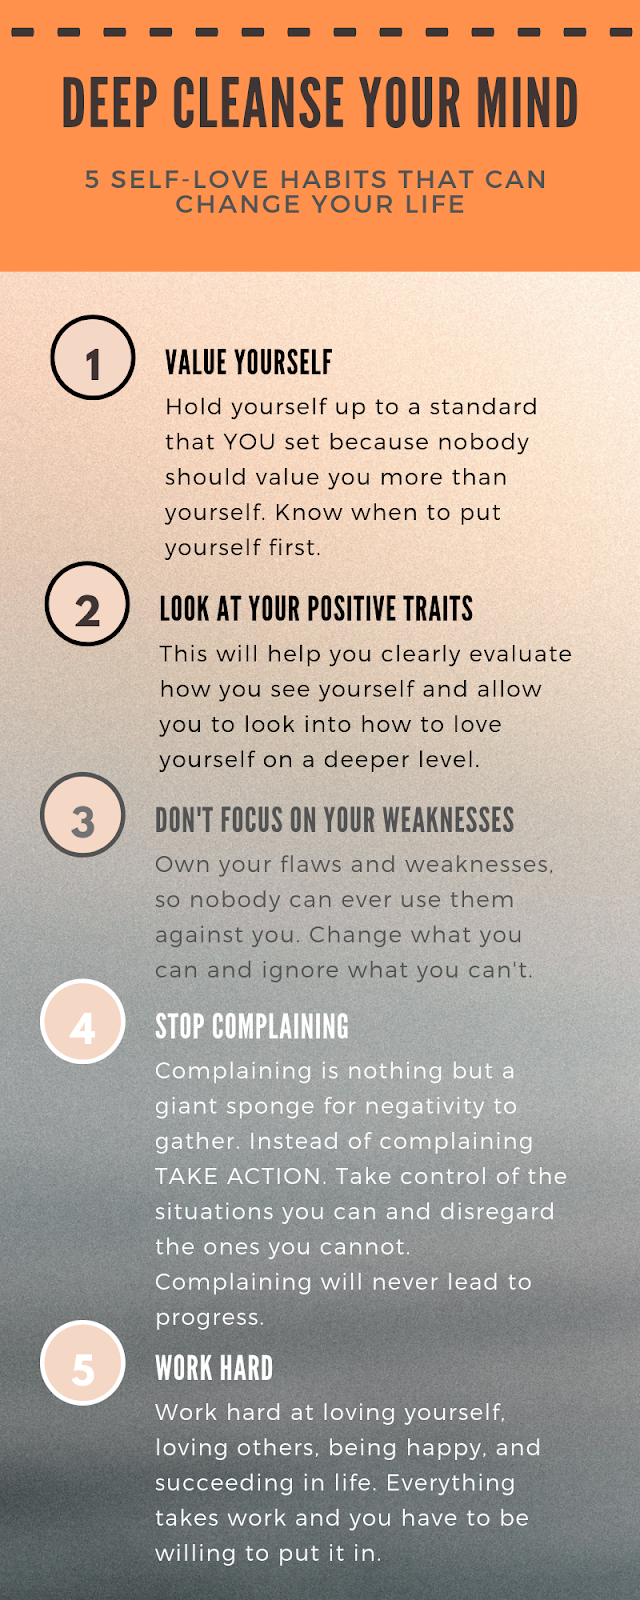 5 Self-love Habits That Can Change Your Life.